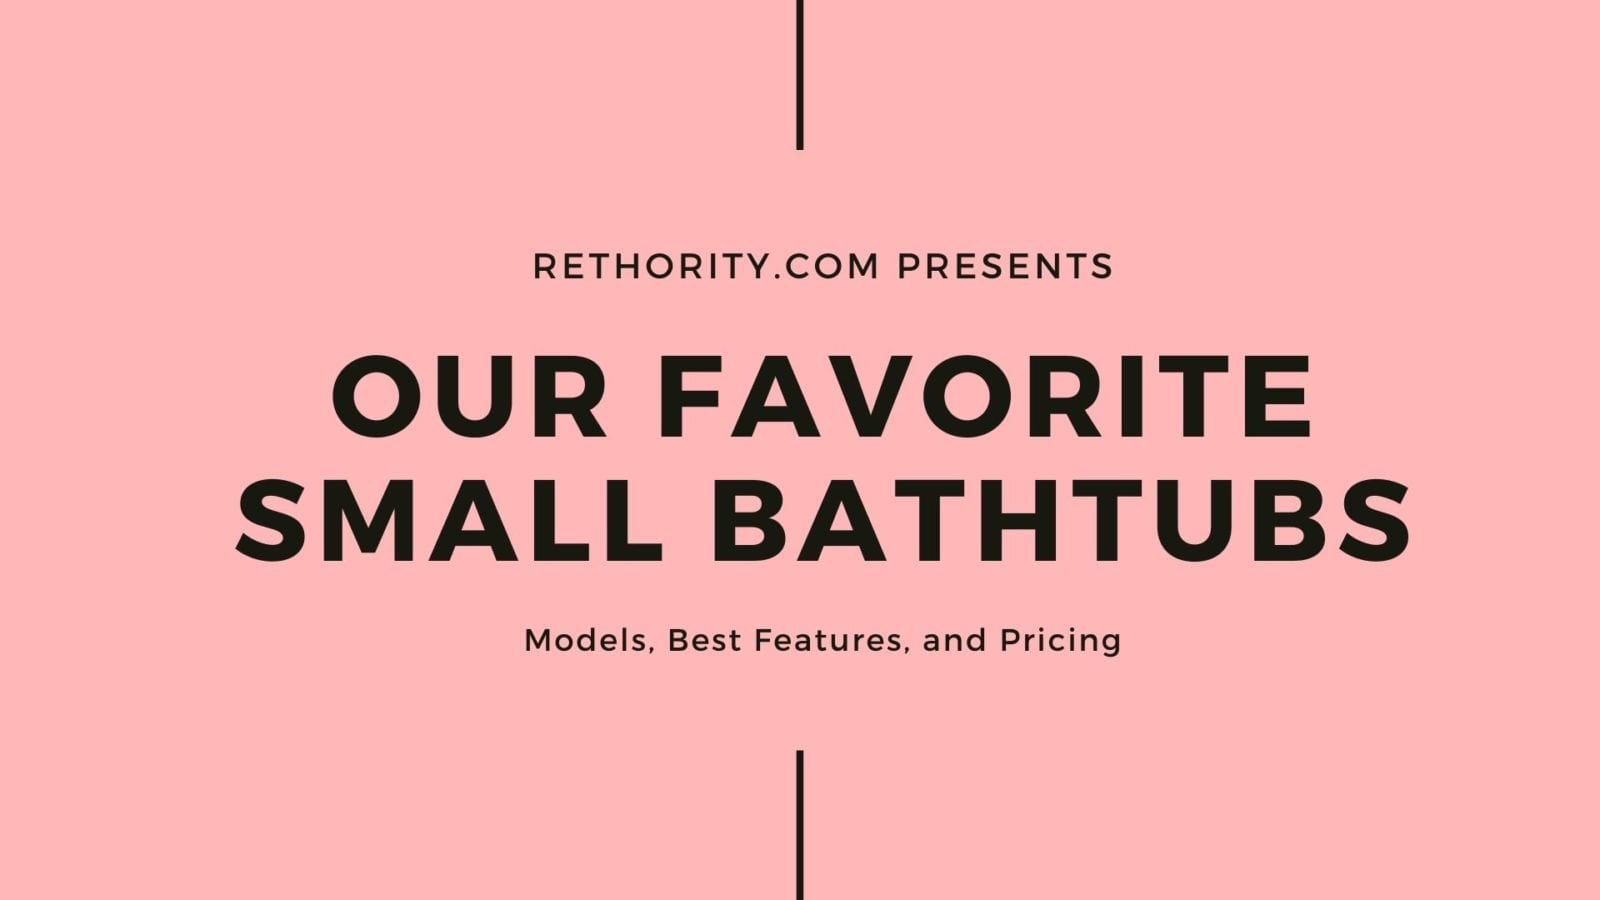 Rethority presents the best small bathtubs for your home